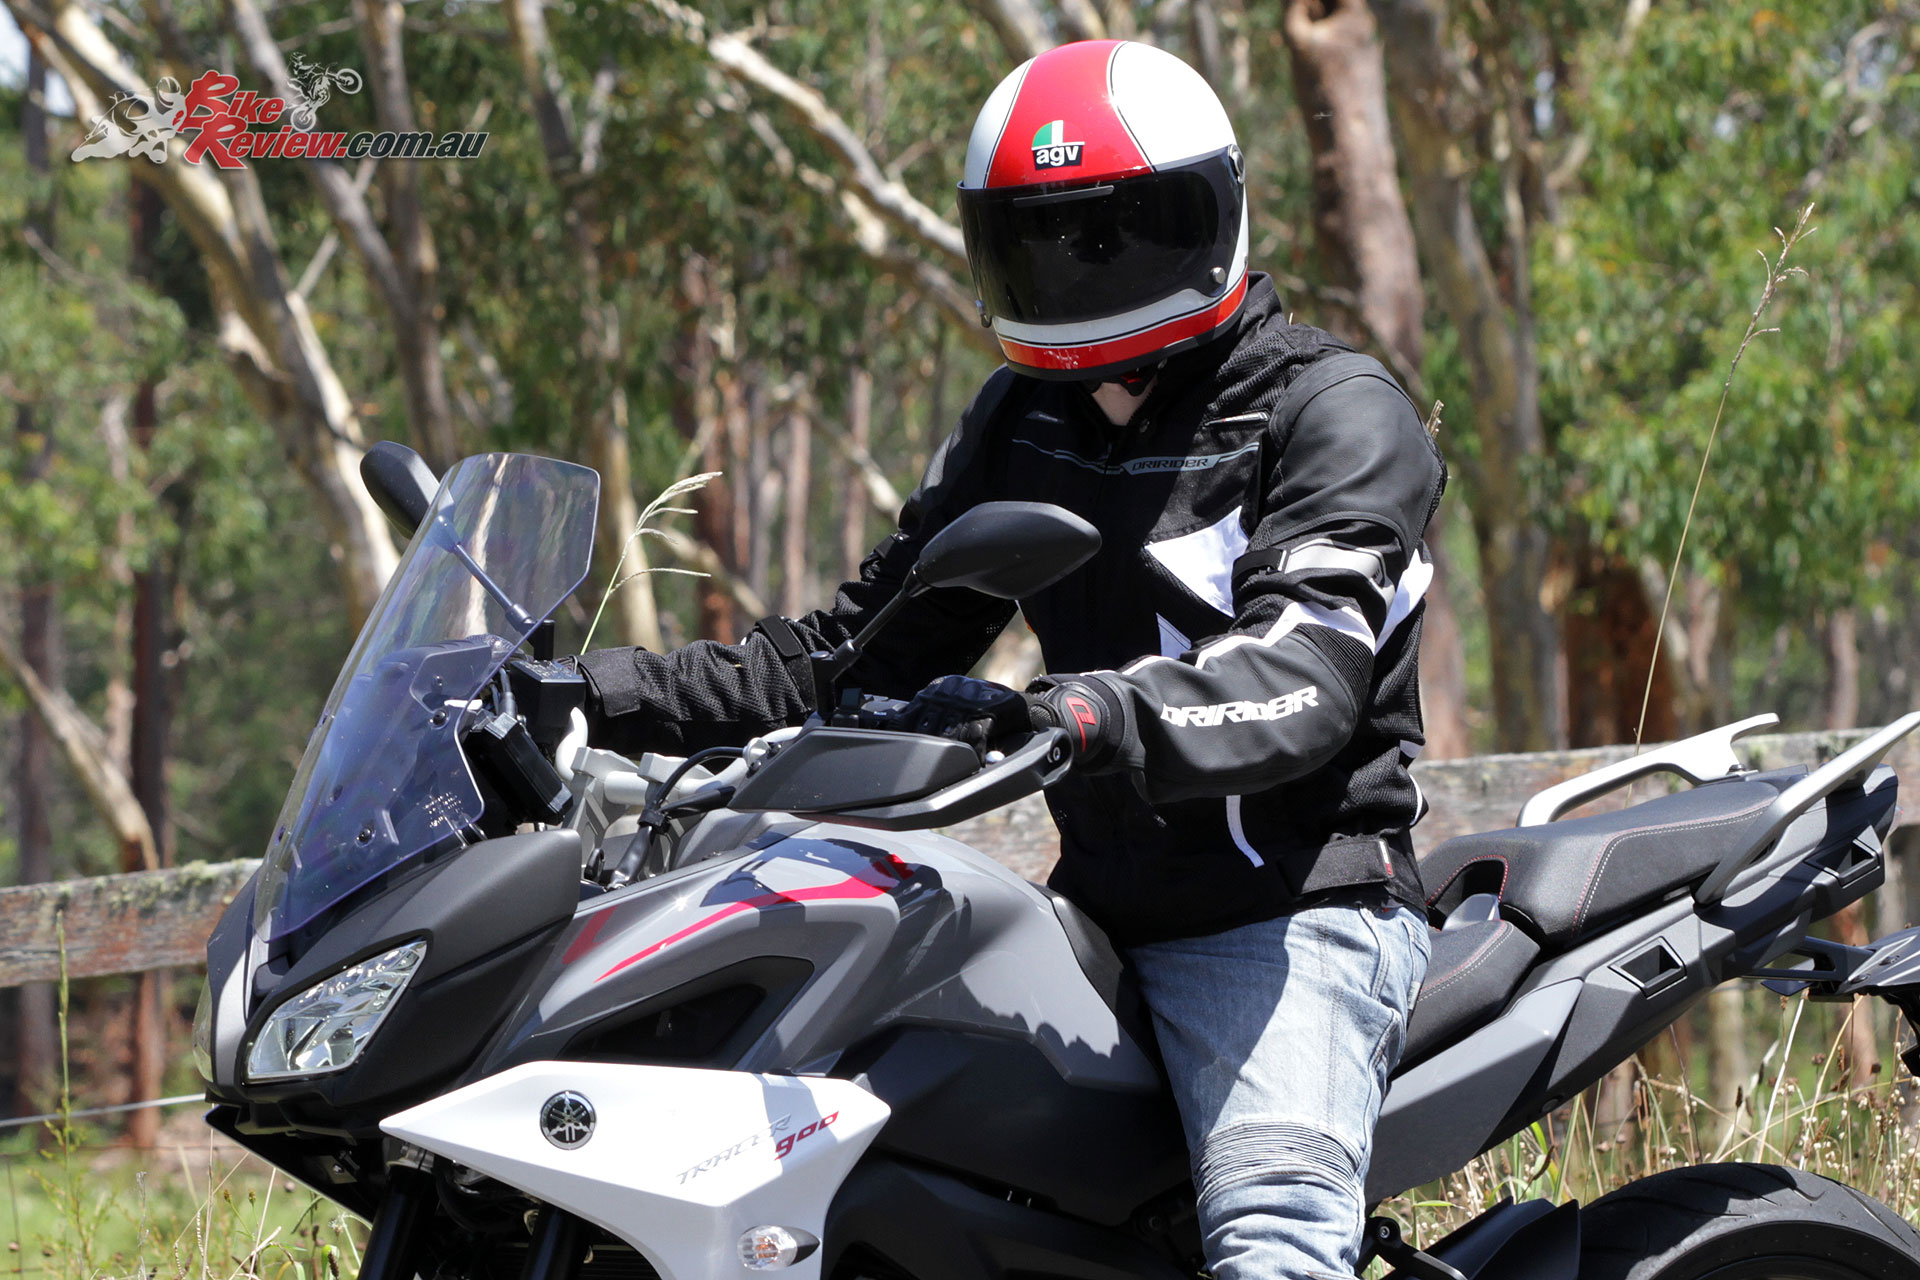 Rocking the Dririder Climate Control EXO 2 Jacket and Strike Gloves while testing Yamaha's MT-09 Tracer in 35-degree heat